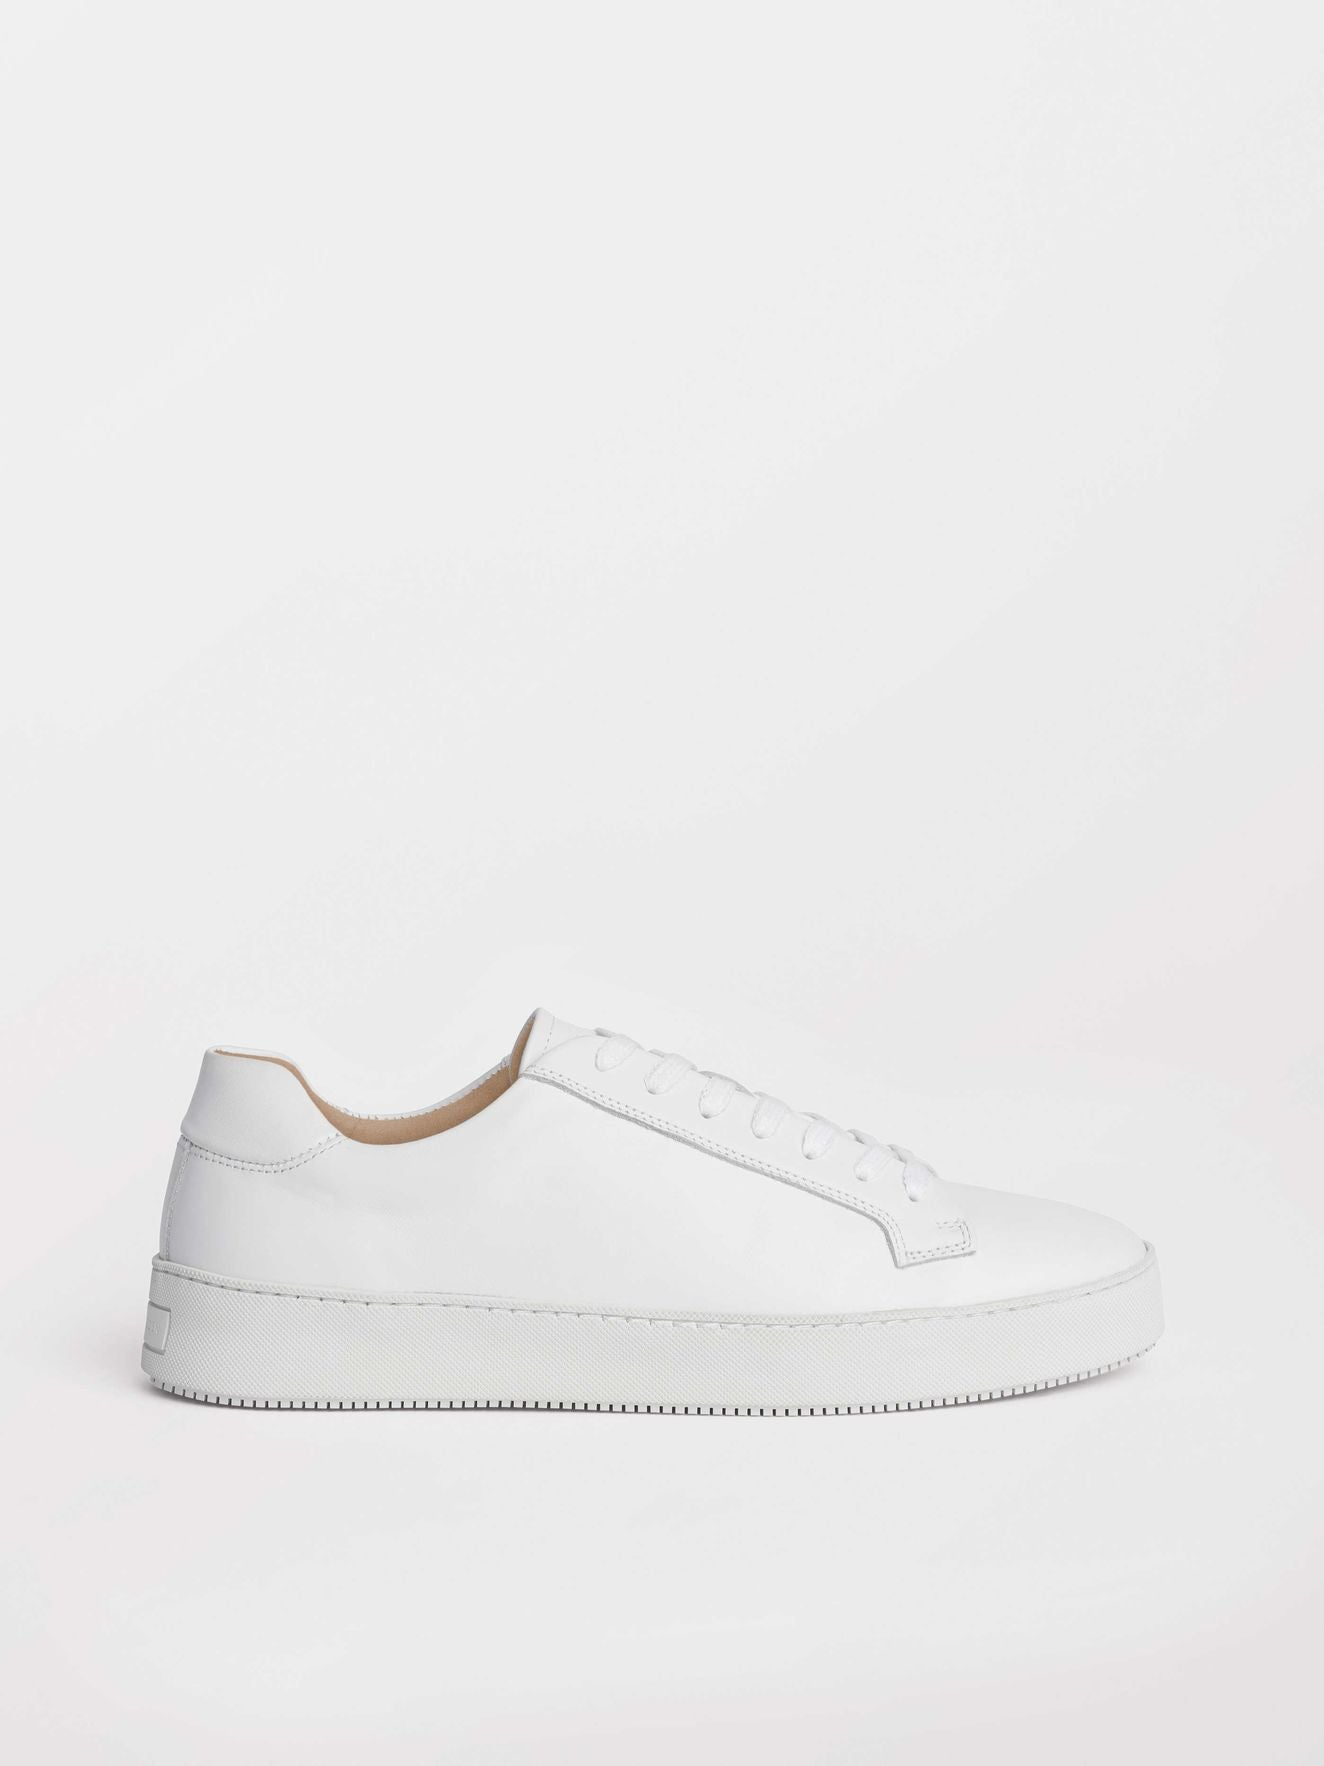 Tiger Of Sweden Salas Sneakers White - Mojo Independent Store